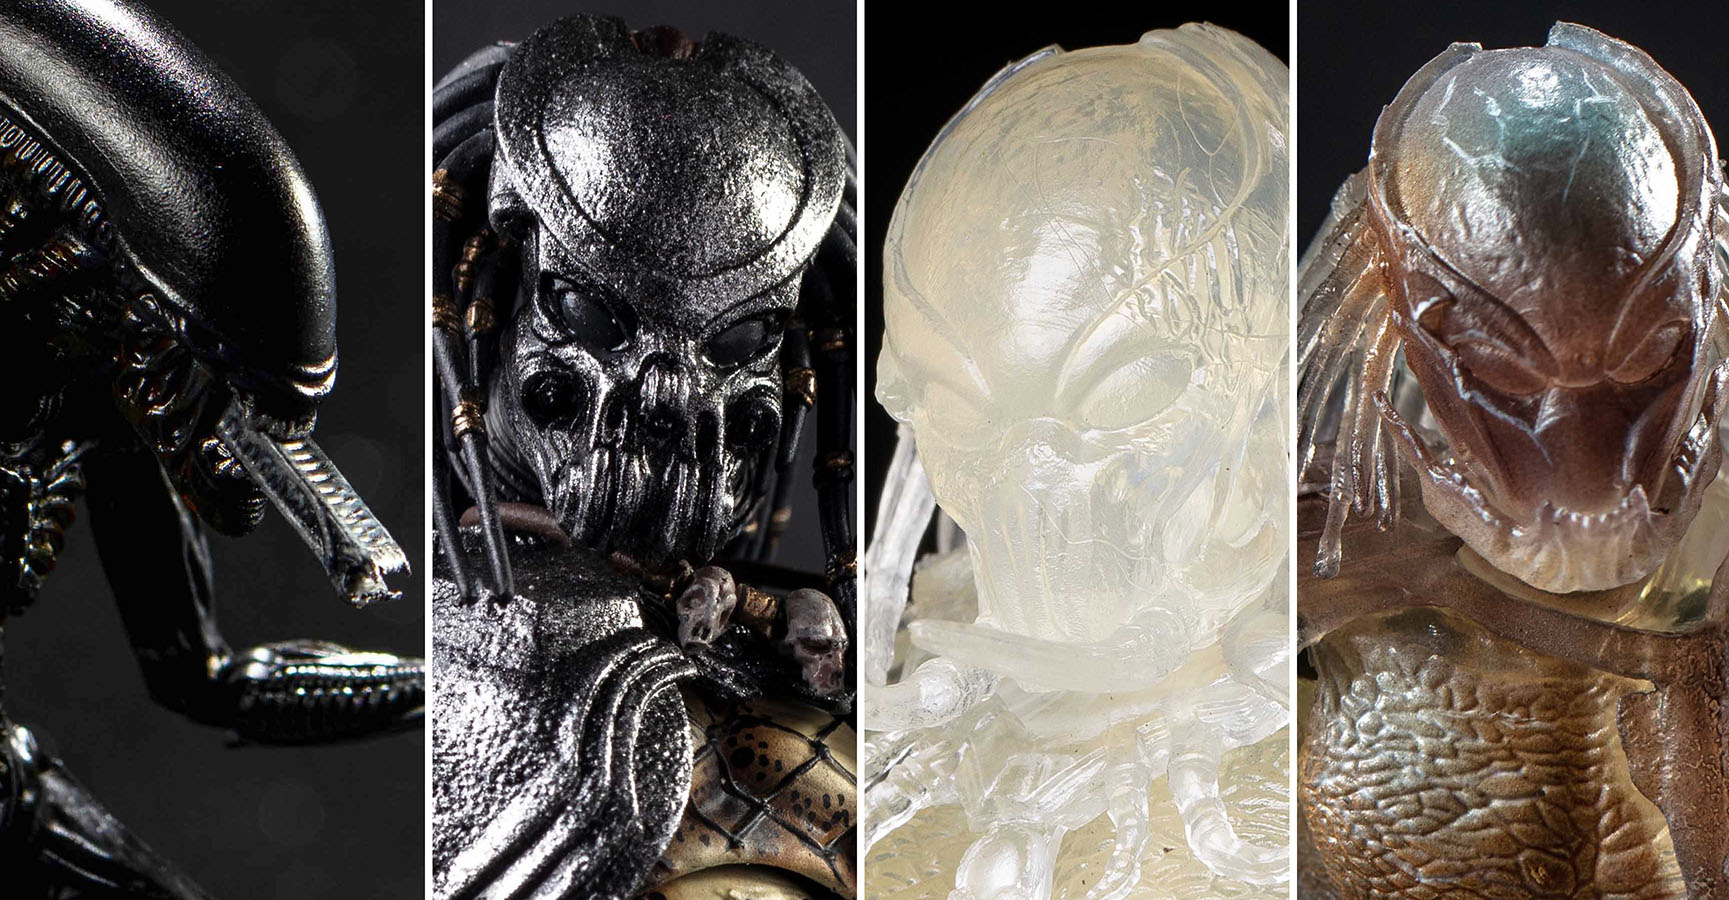 Avp and Predator by Hiya Toys